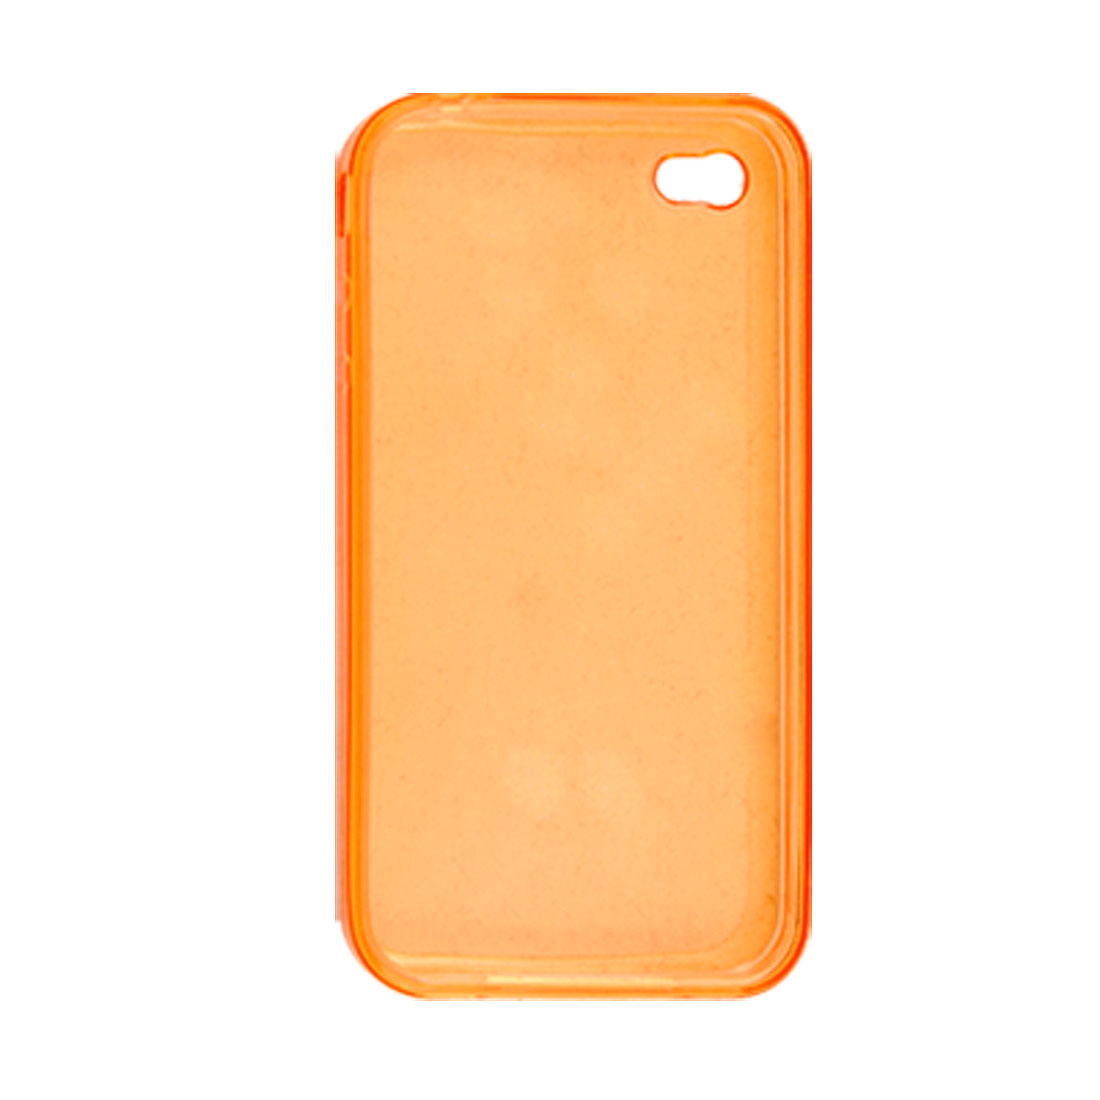 Soft Plastic Protective Clear Orange Cover for iPhone 4